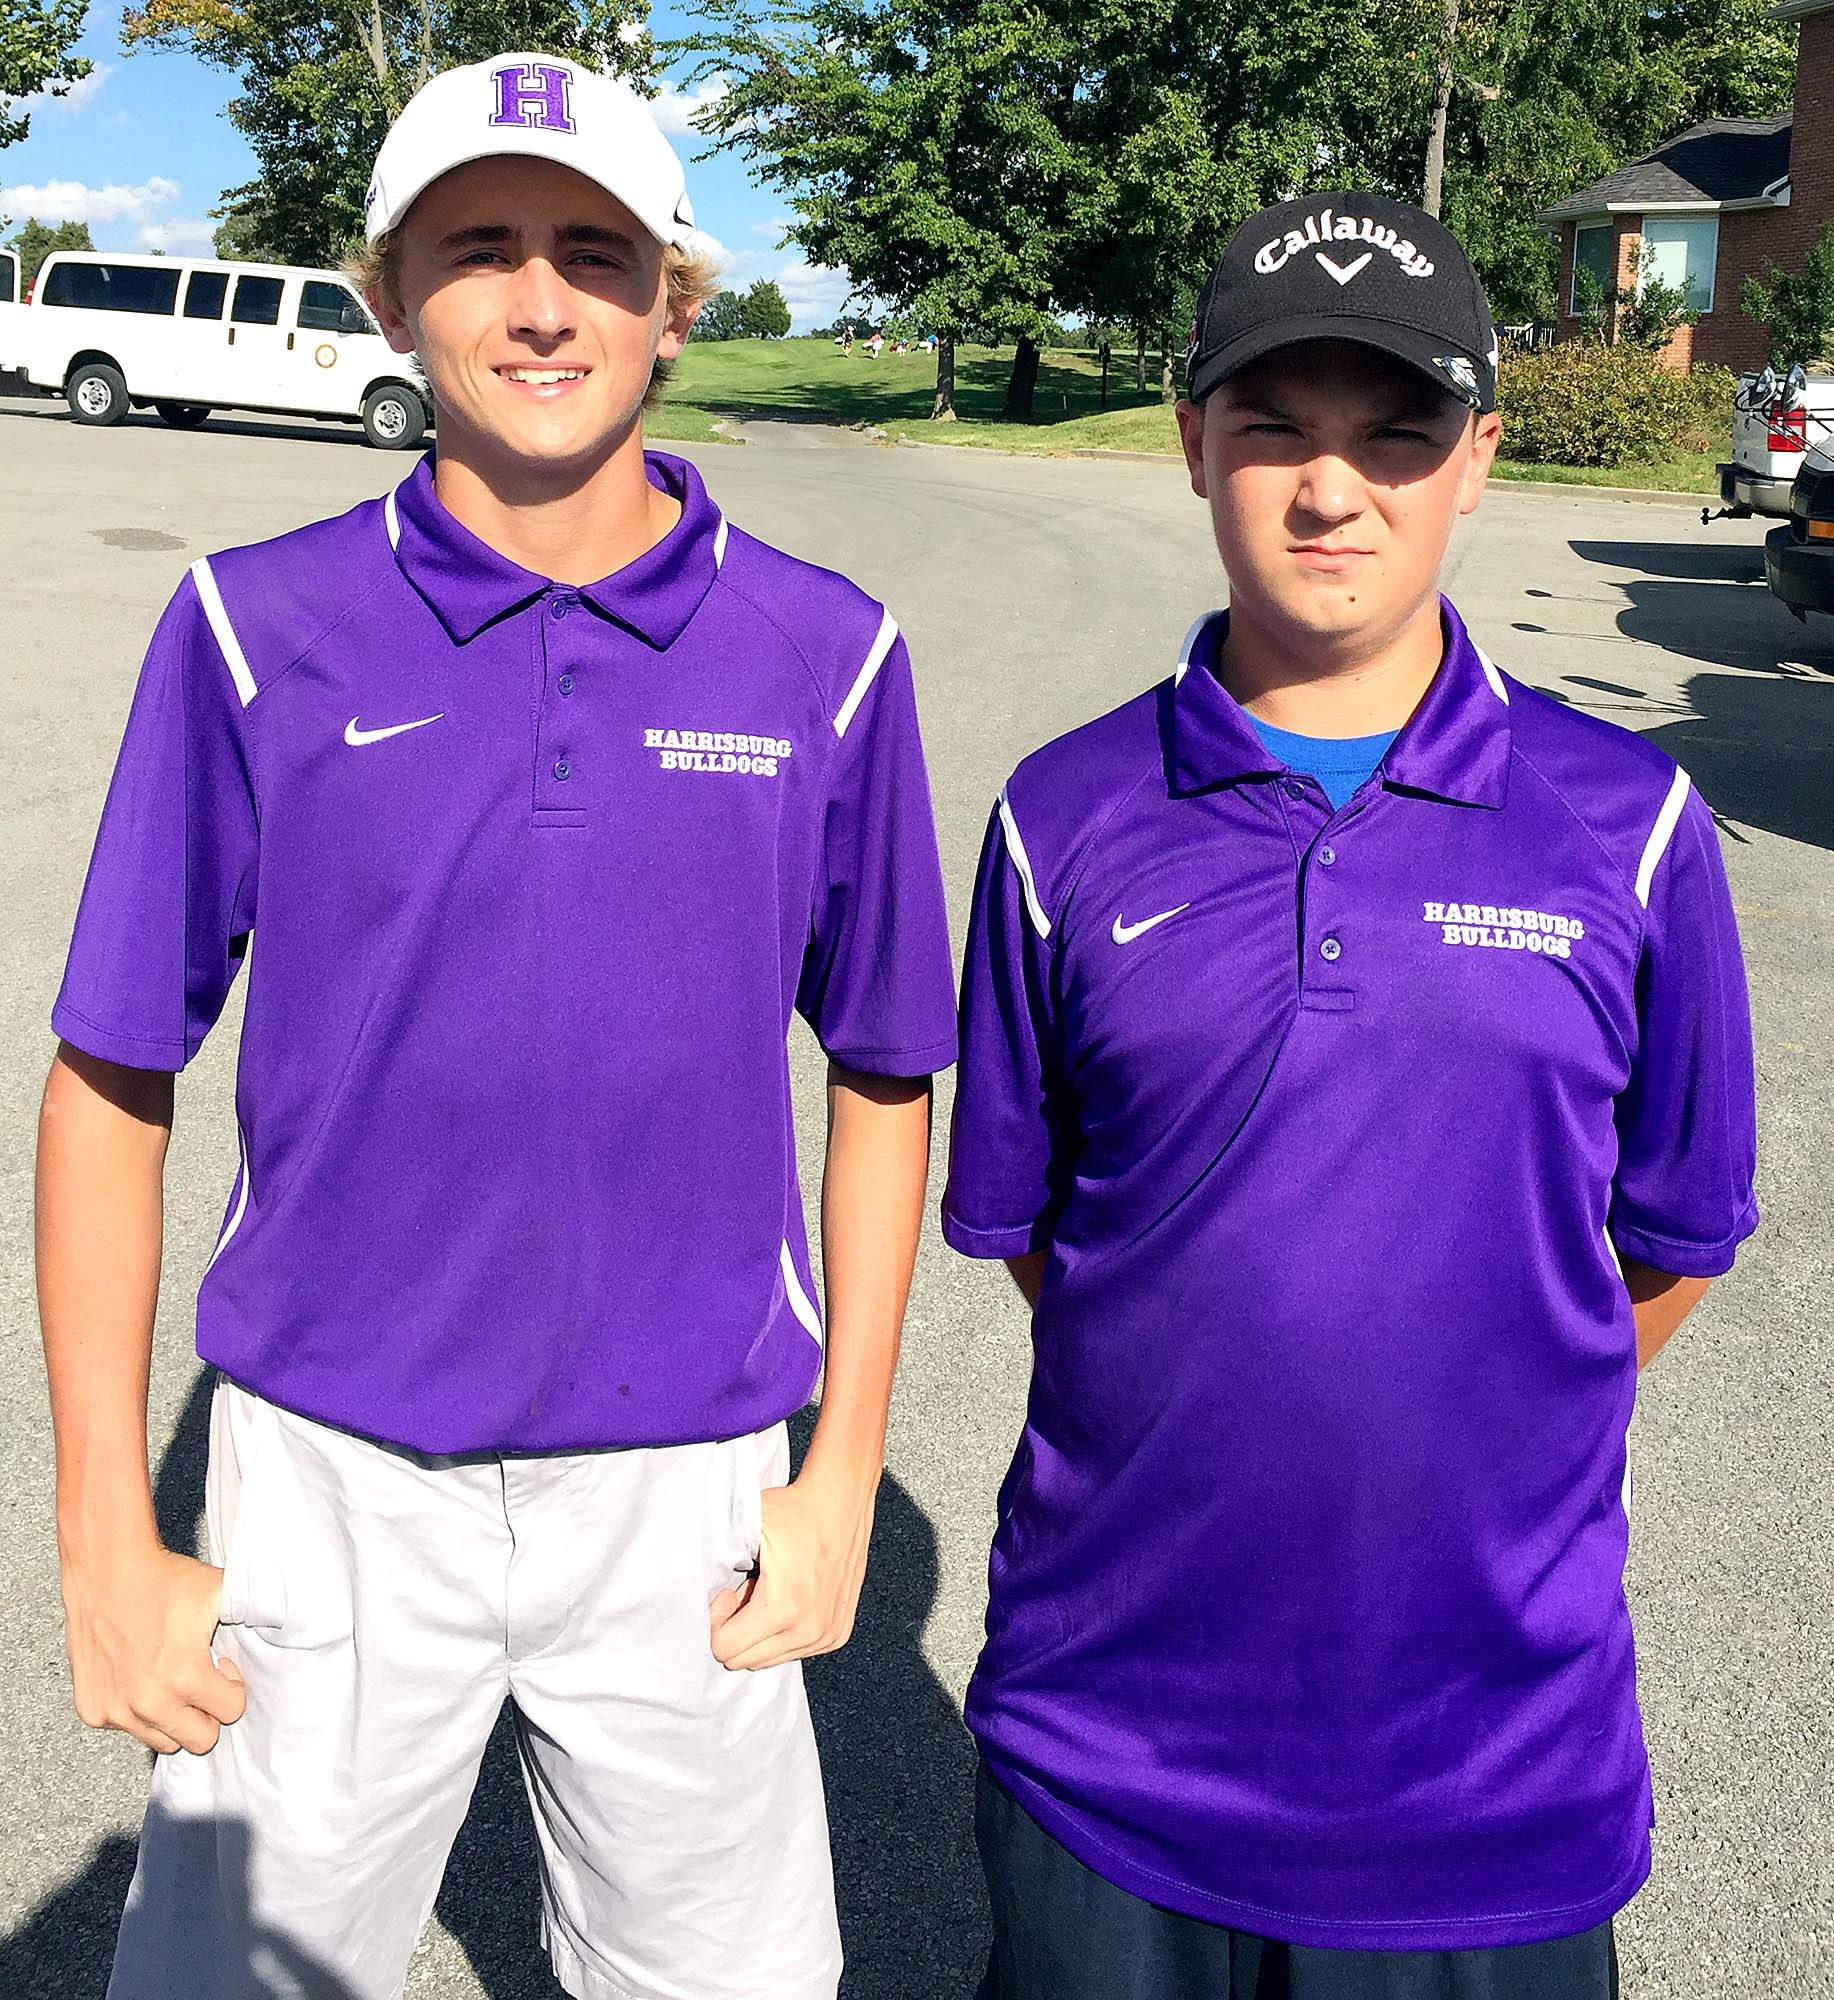 Harrisburg's Andrew Bittle (left) and Ashton Hall will represent HHS at next week's IHSA Class 2A Sectional, which will be played at Hickory Ridge Golf Course in Carbondale.